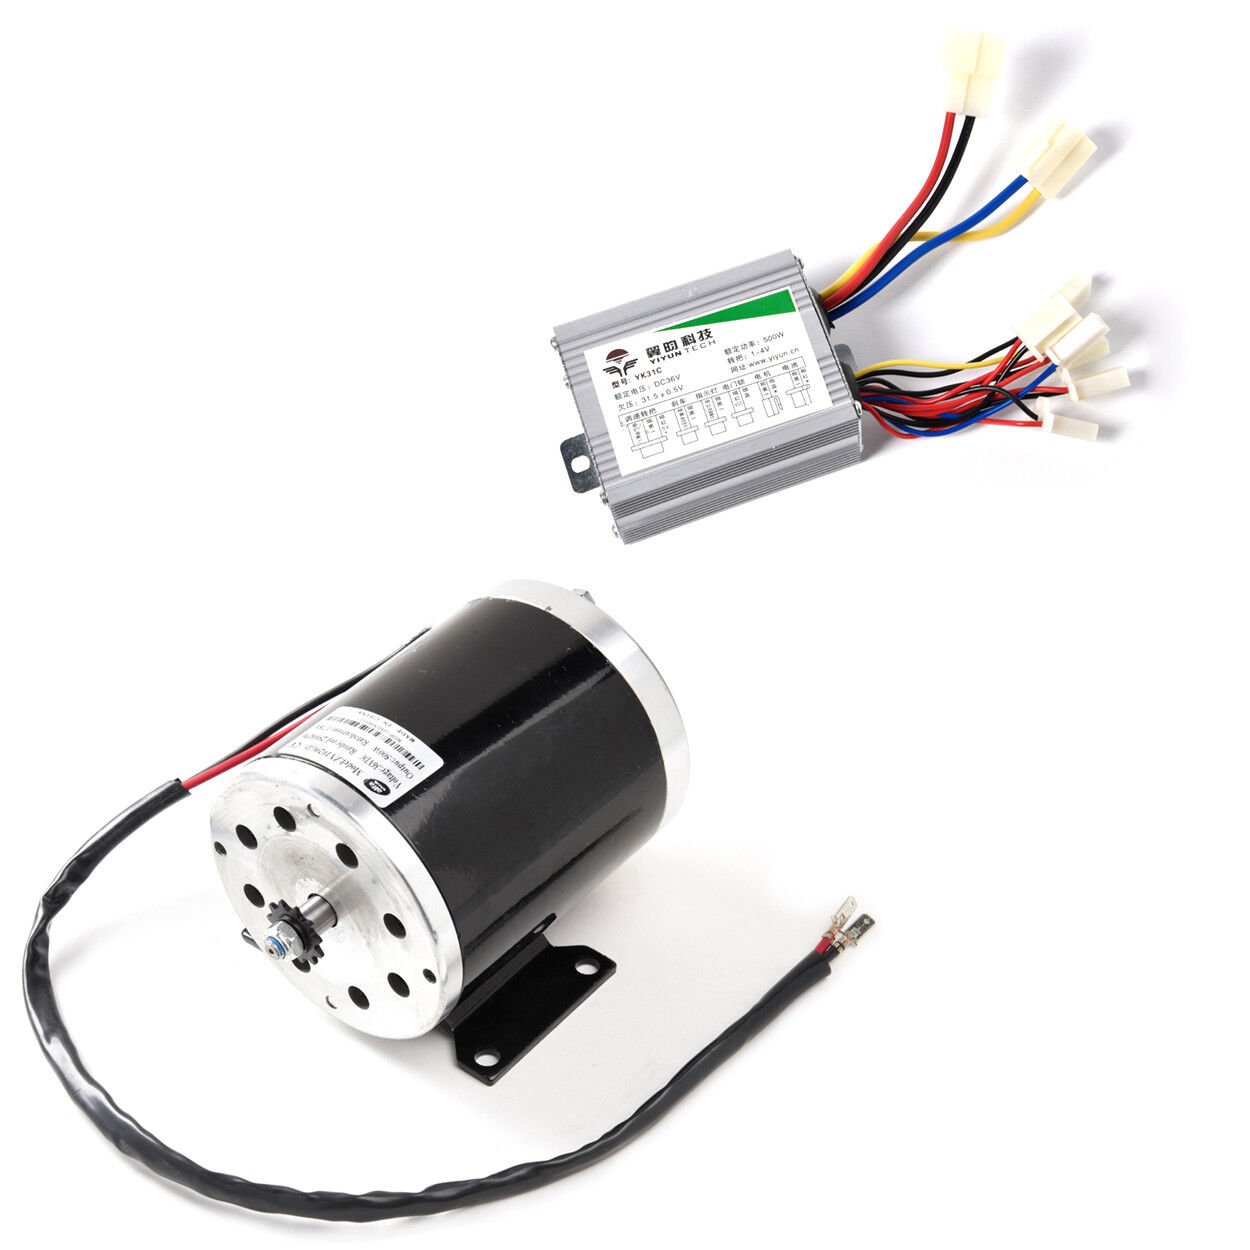 500 W 36V DC electric motor 1020 kit w base control box f scooter gokart or DIY